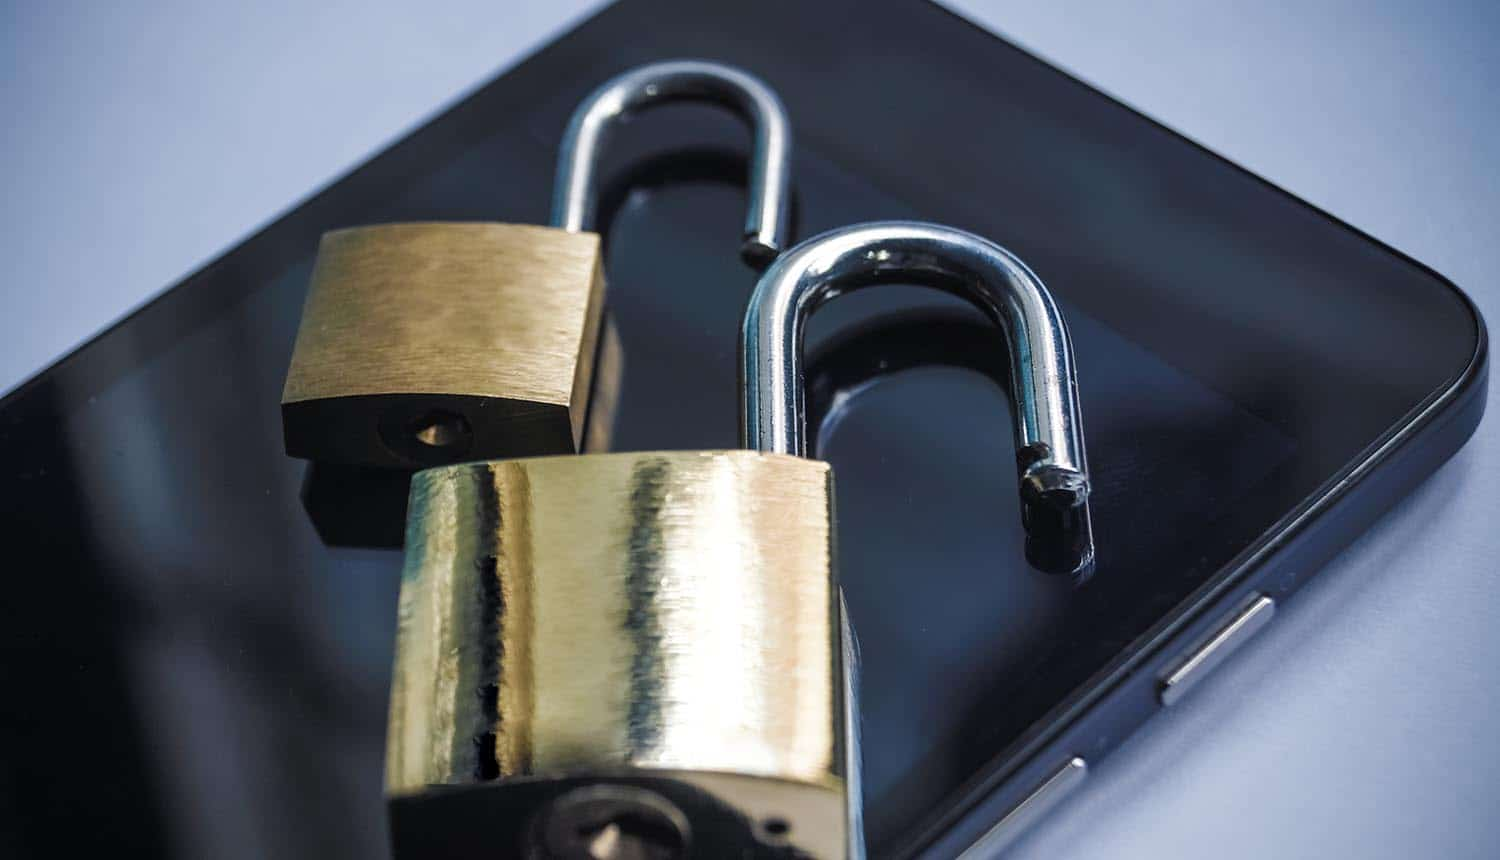 Locks on mobile phone showing phone extraction by law enforcement